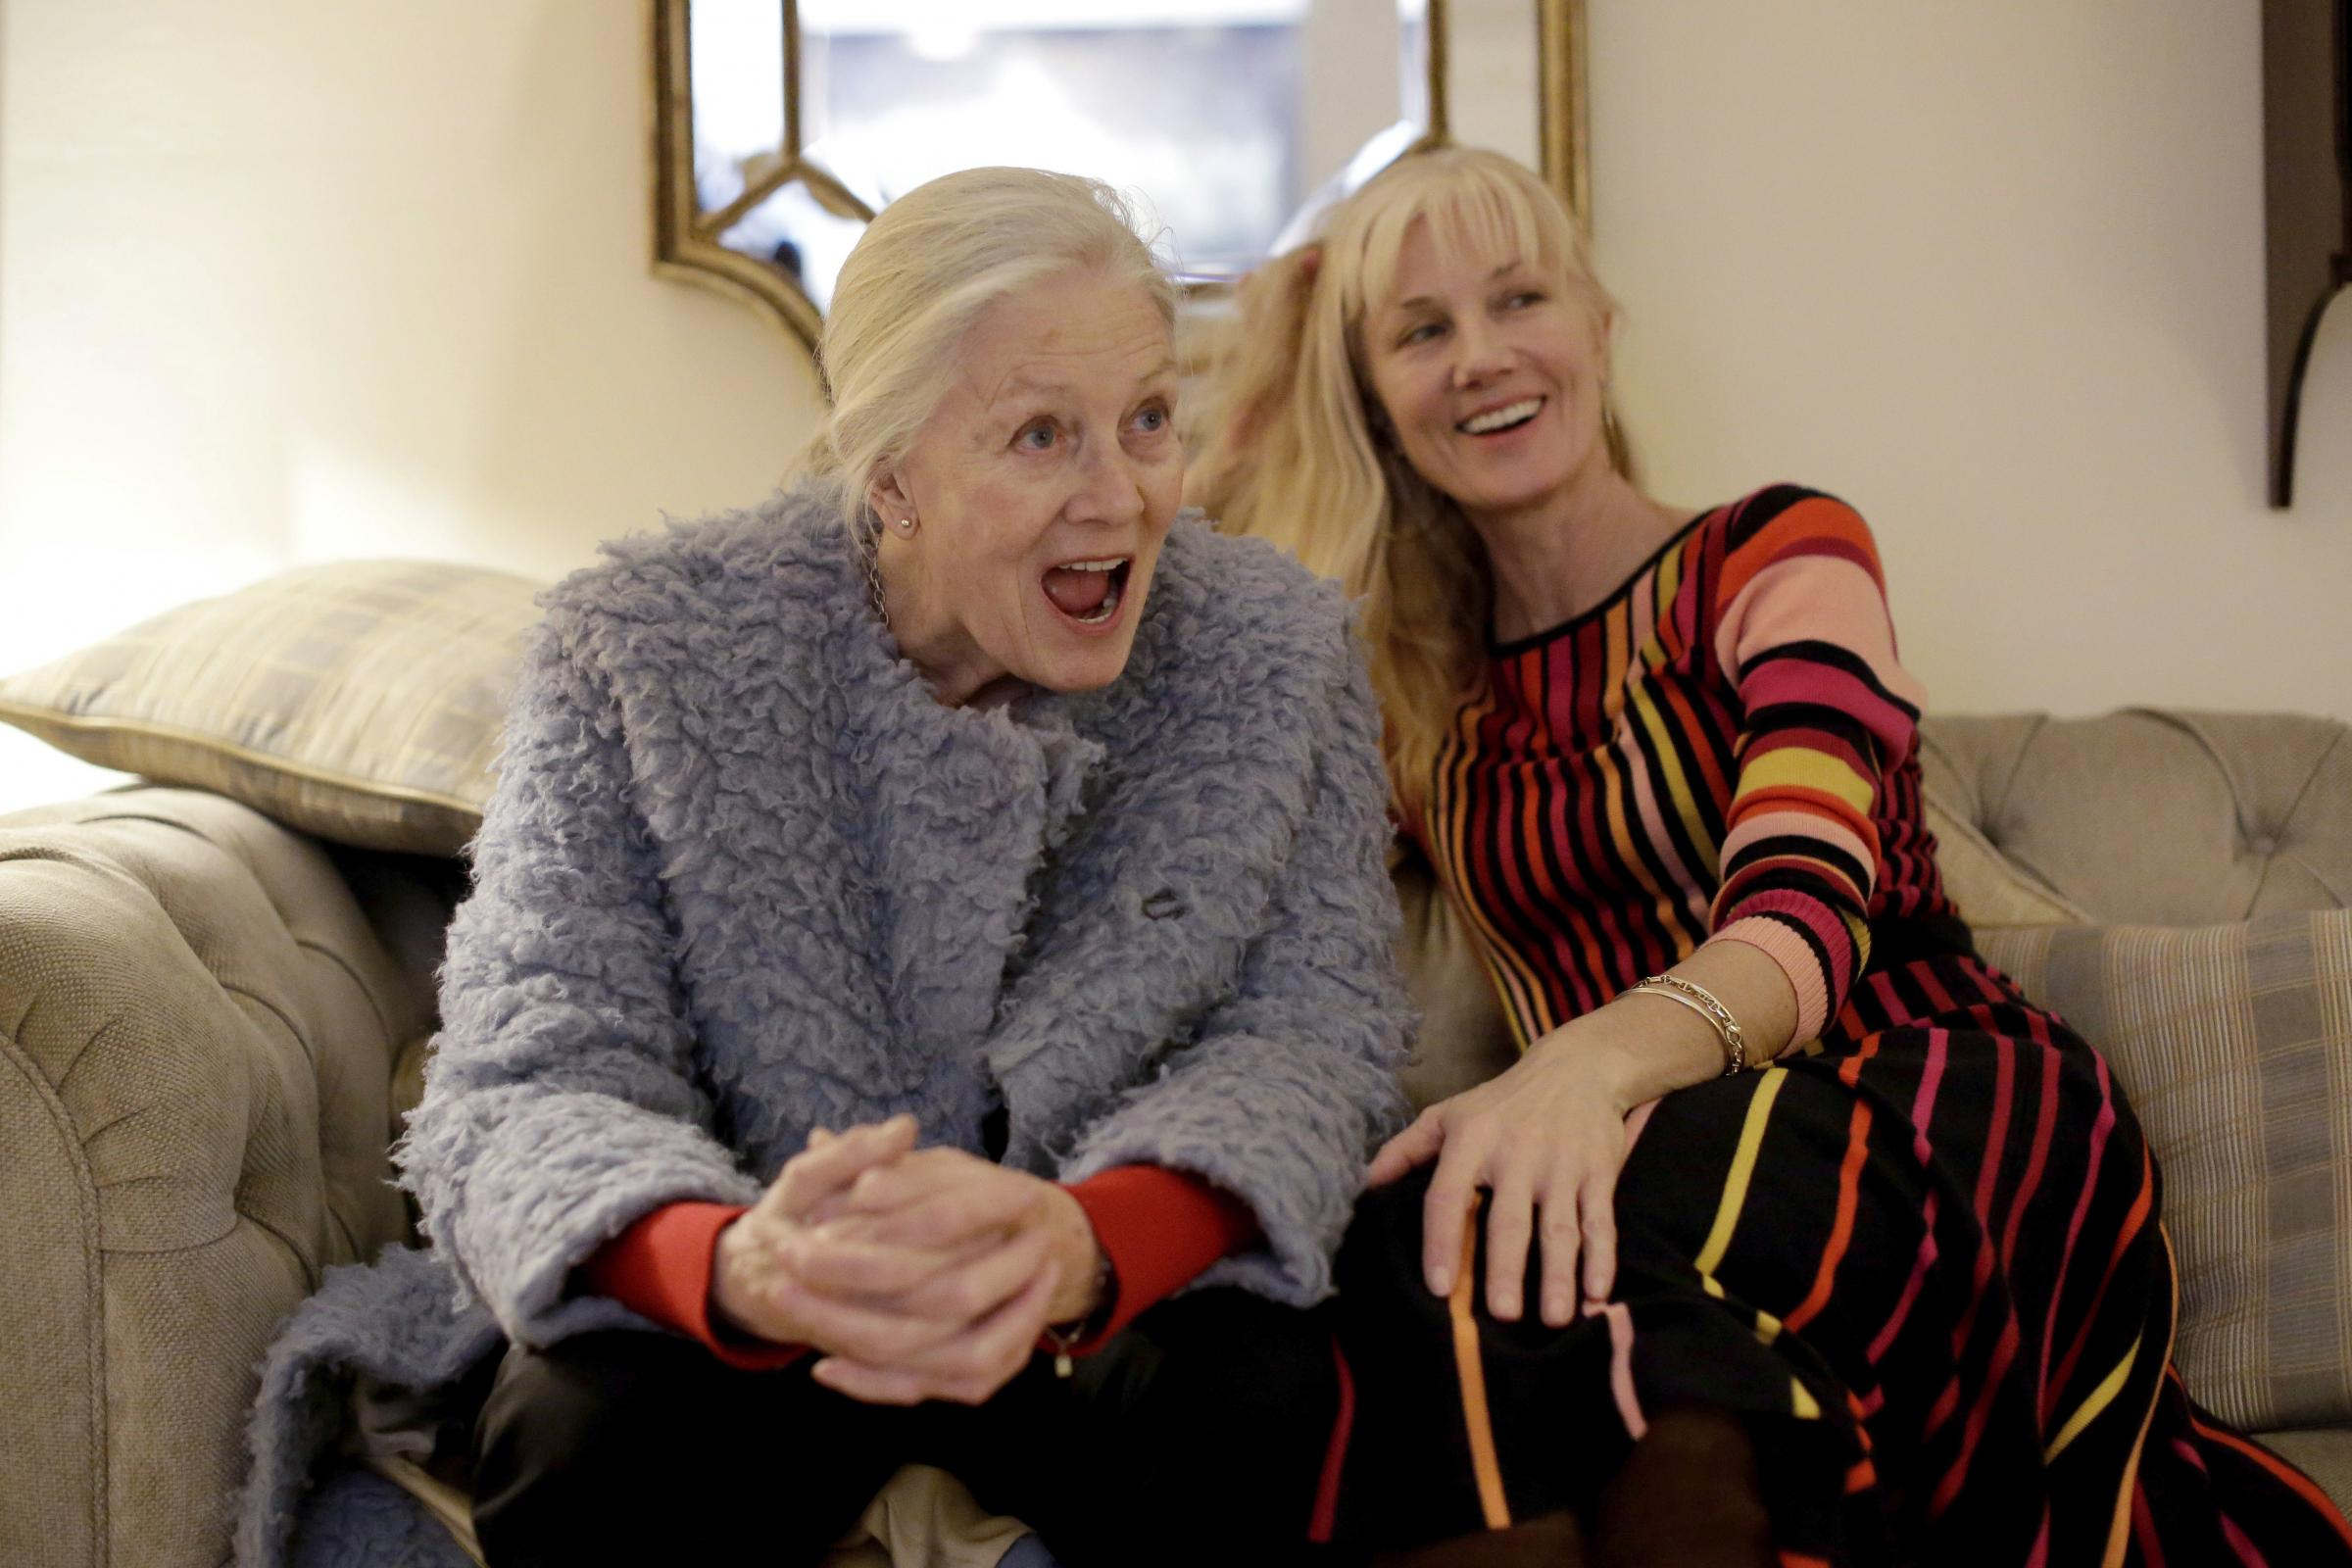 Vanessa Redgrave and her daughter Joely Richardson